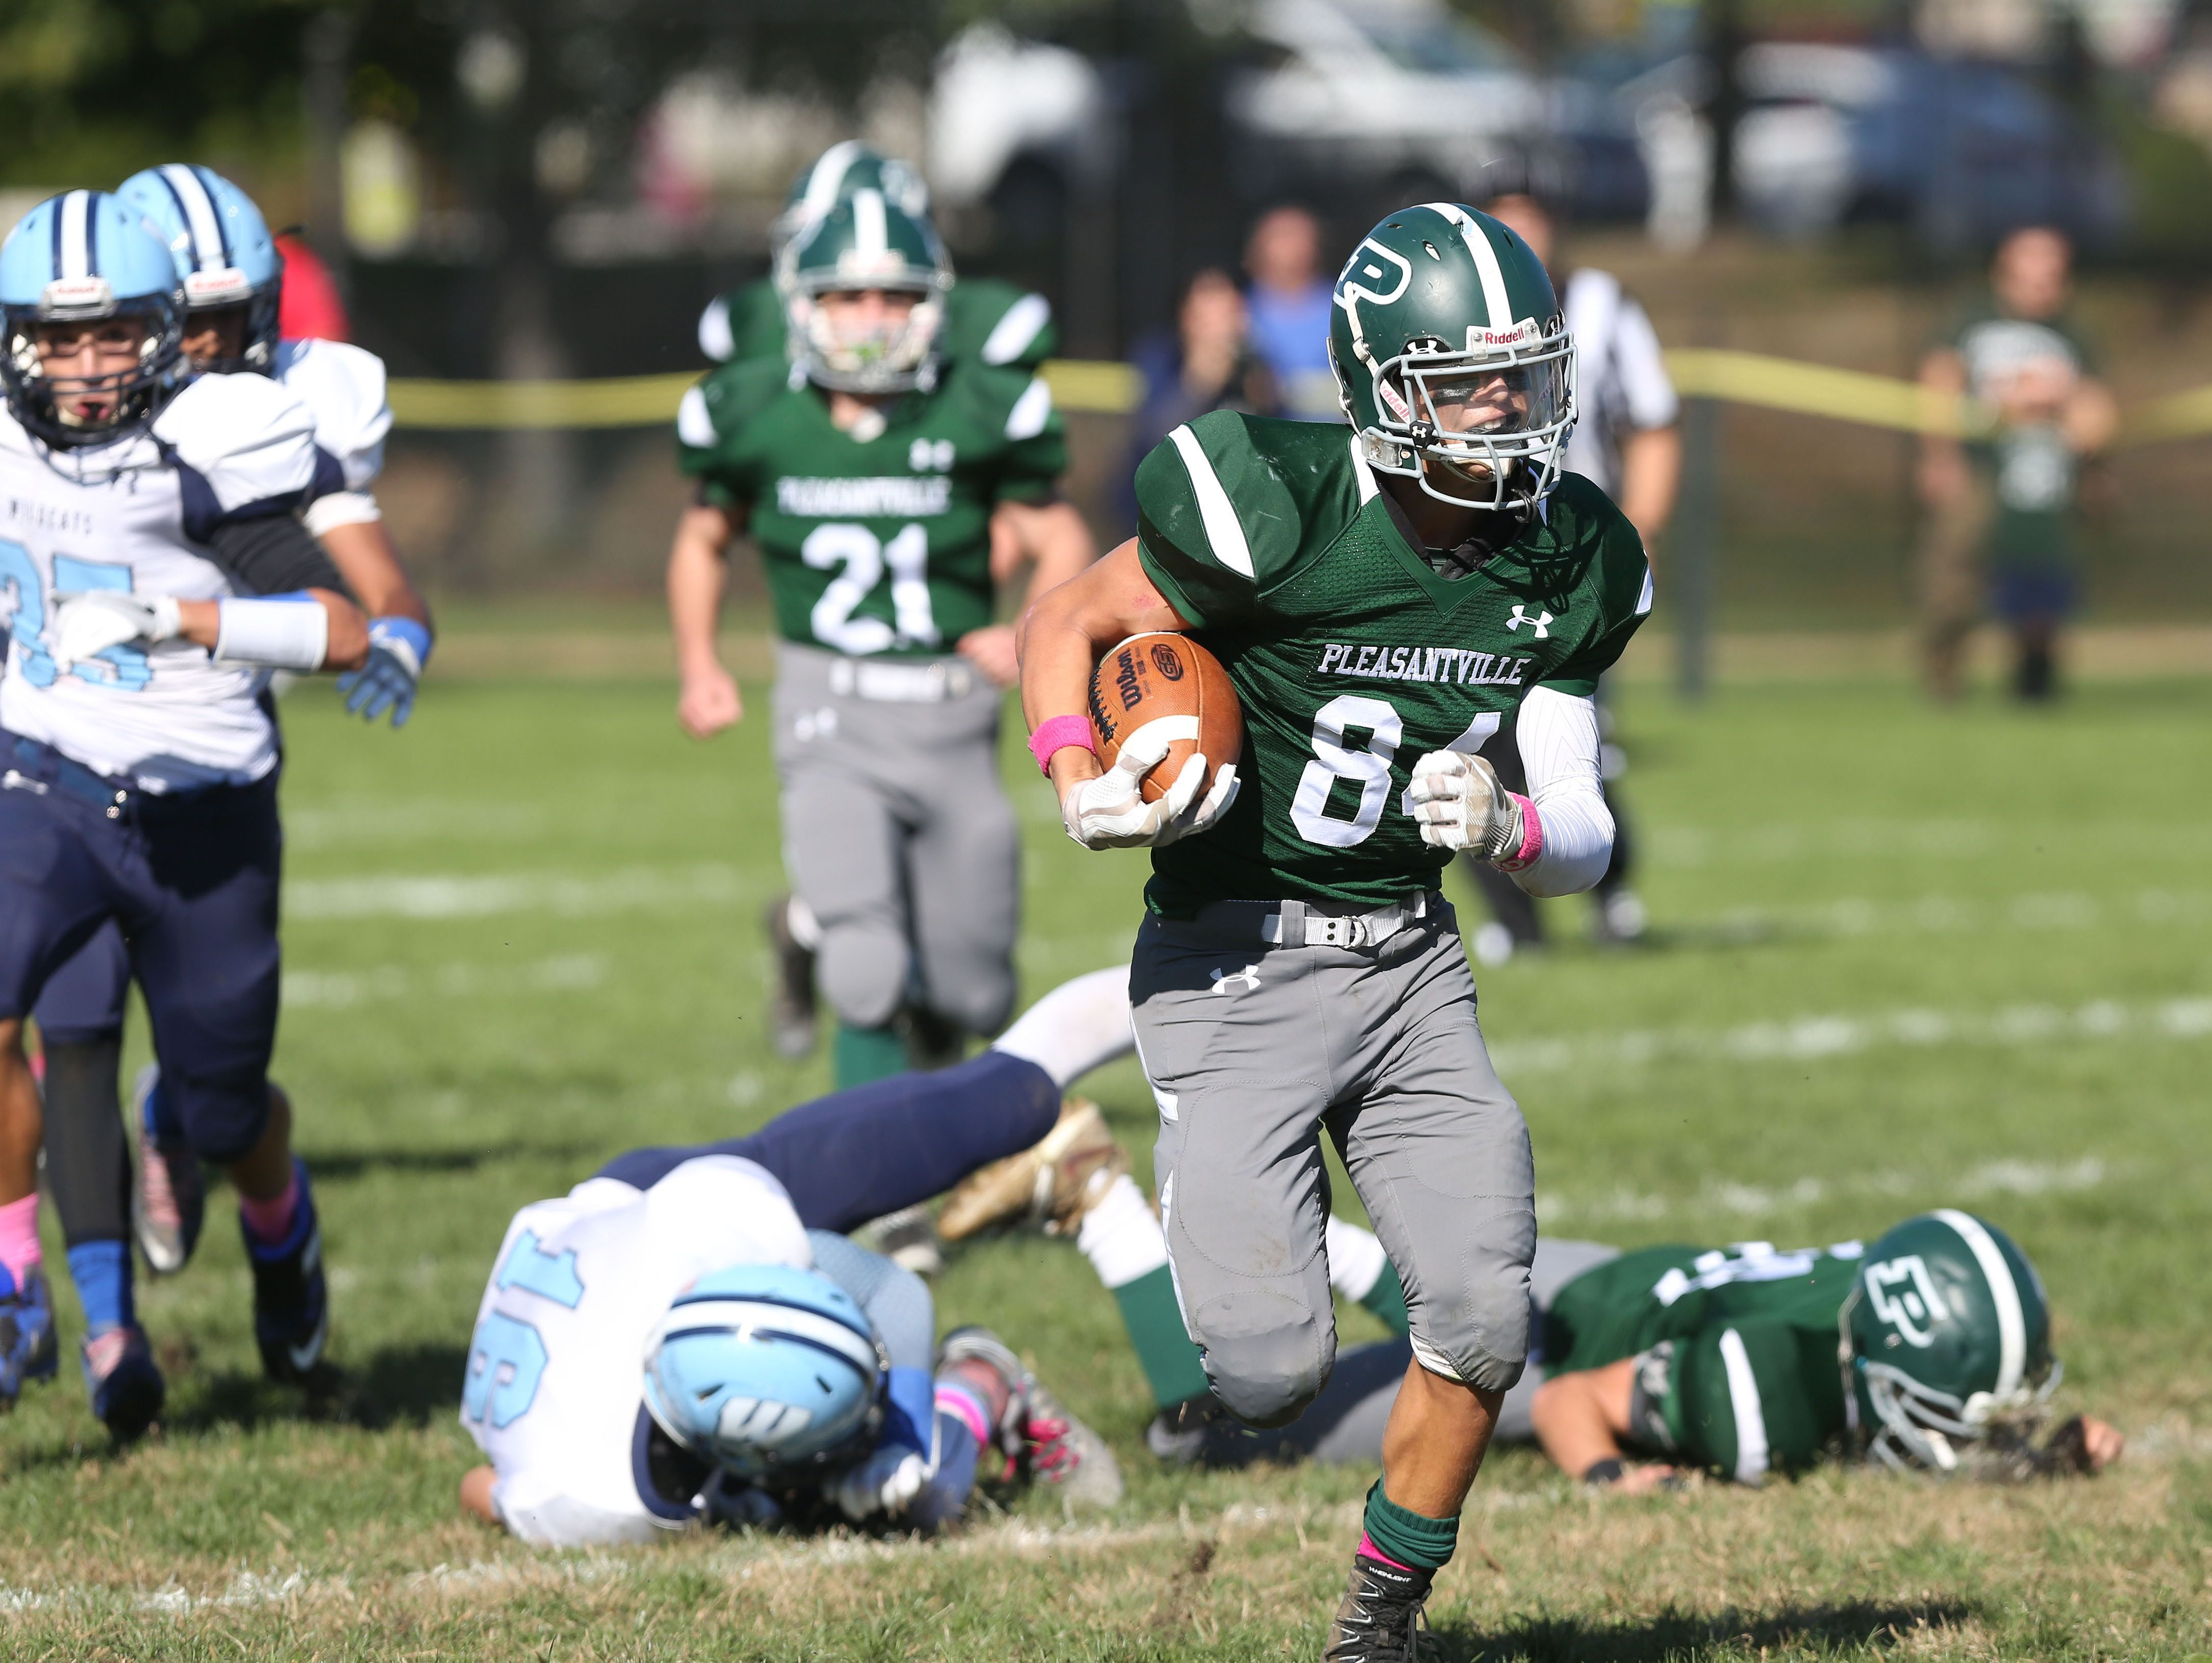 Pleasantville's Ryan Drillock (84) runs for a first half touchdown against Westlake during football action at Parkway Field in Pleasantville Oct. 15, 2016. Pleasantville won the game 38-35.